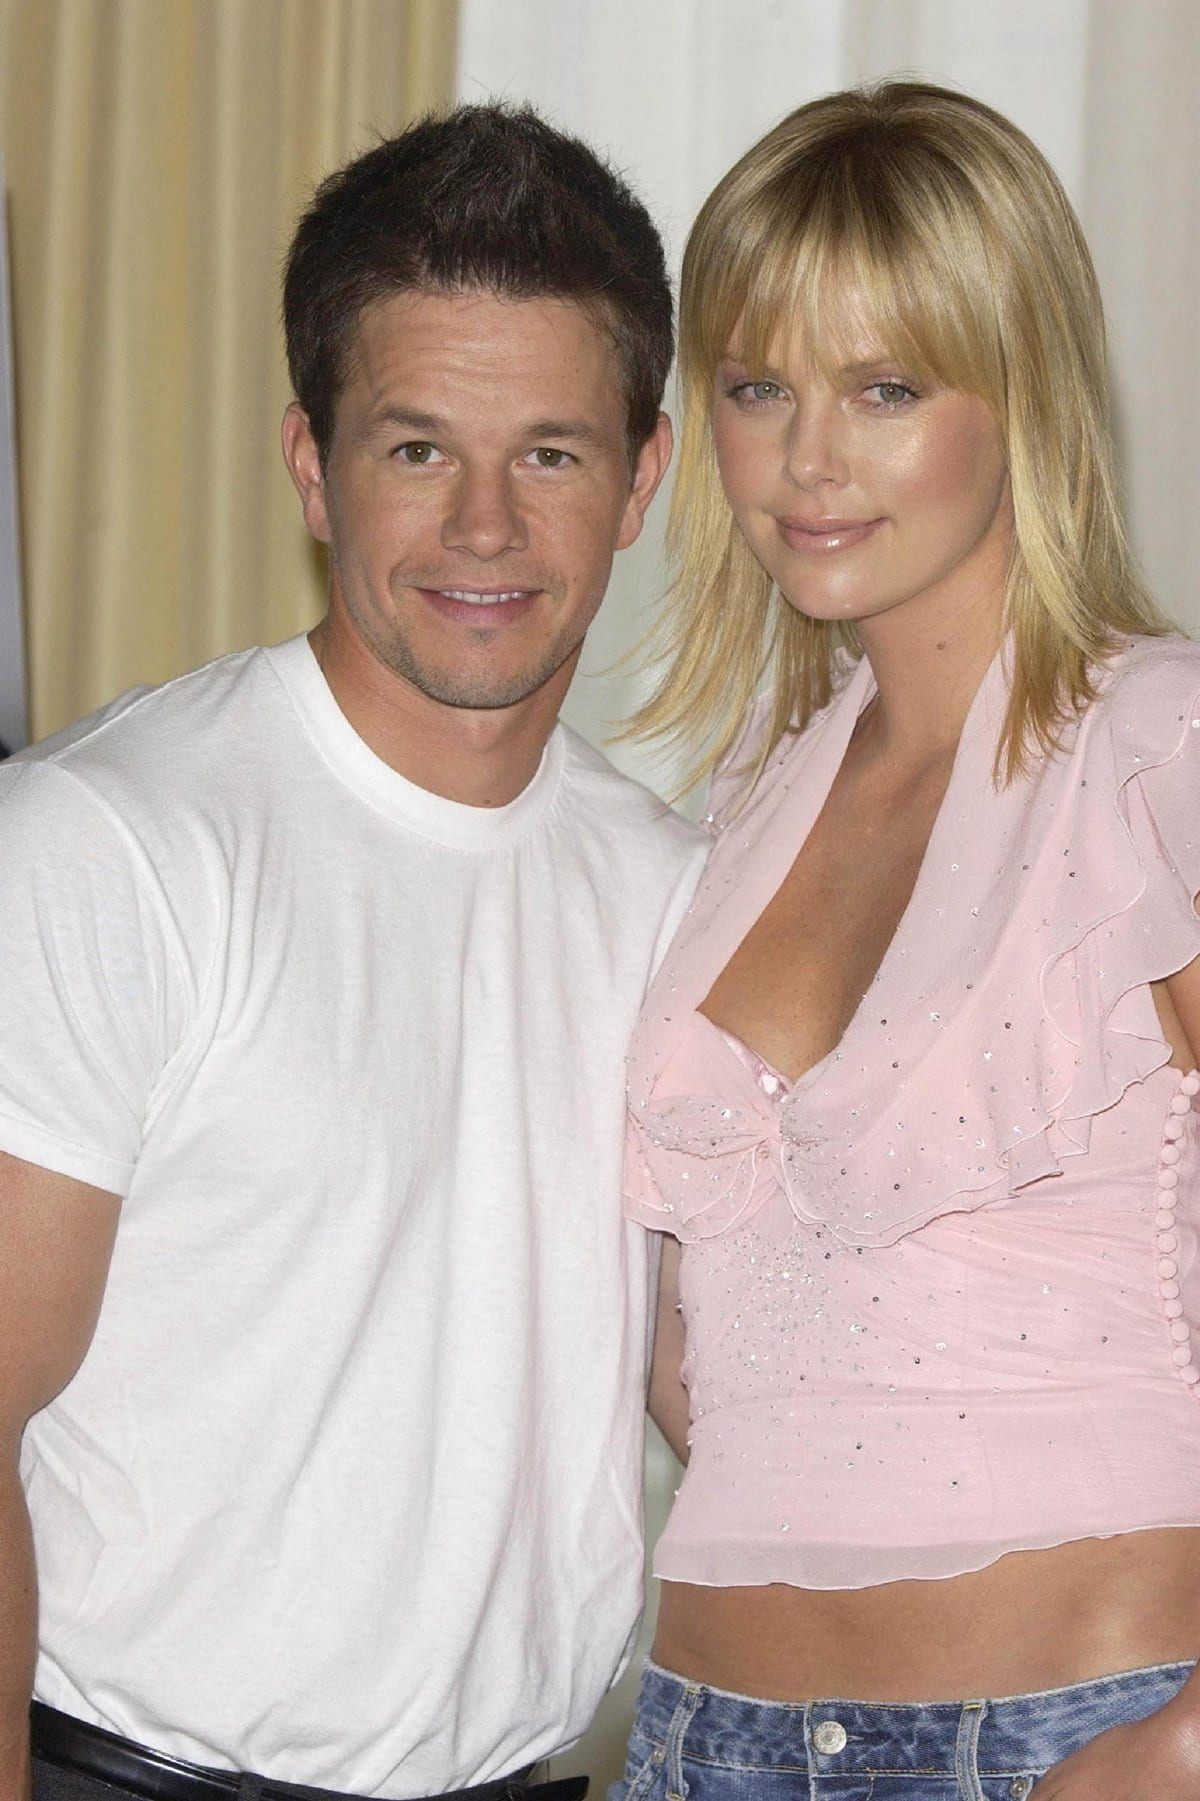 Mark Wahlberg and Charlize Theron are rumored to have dated while filming The Italian Job (2003) together